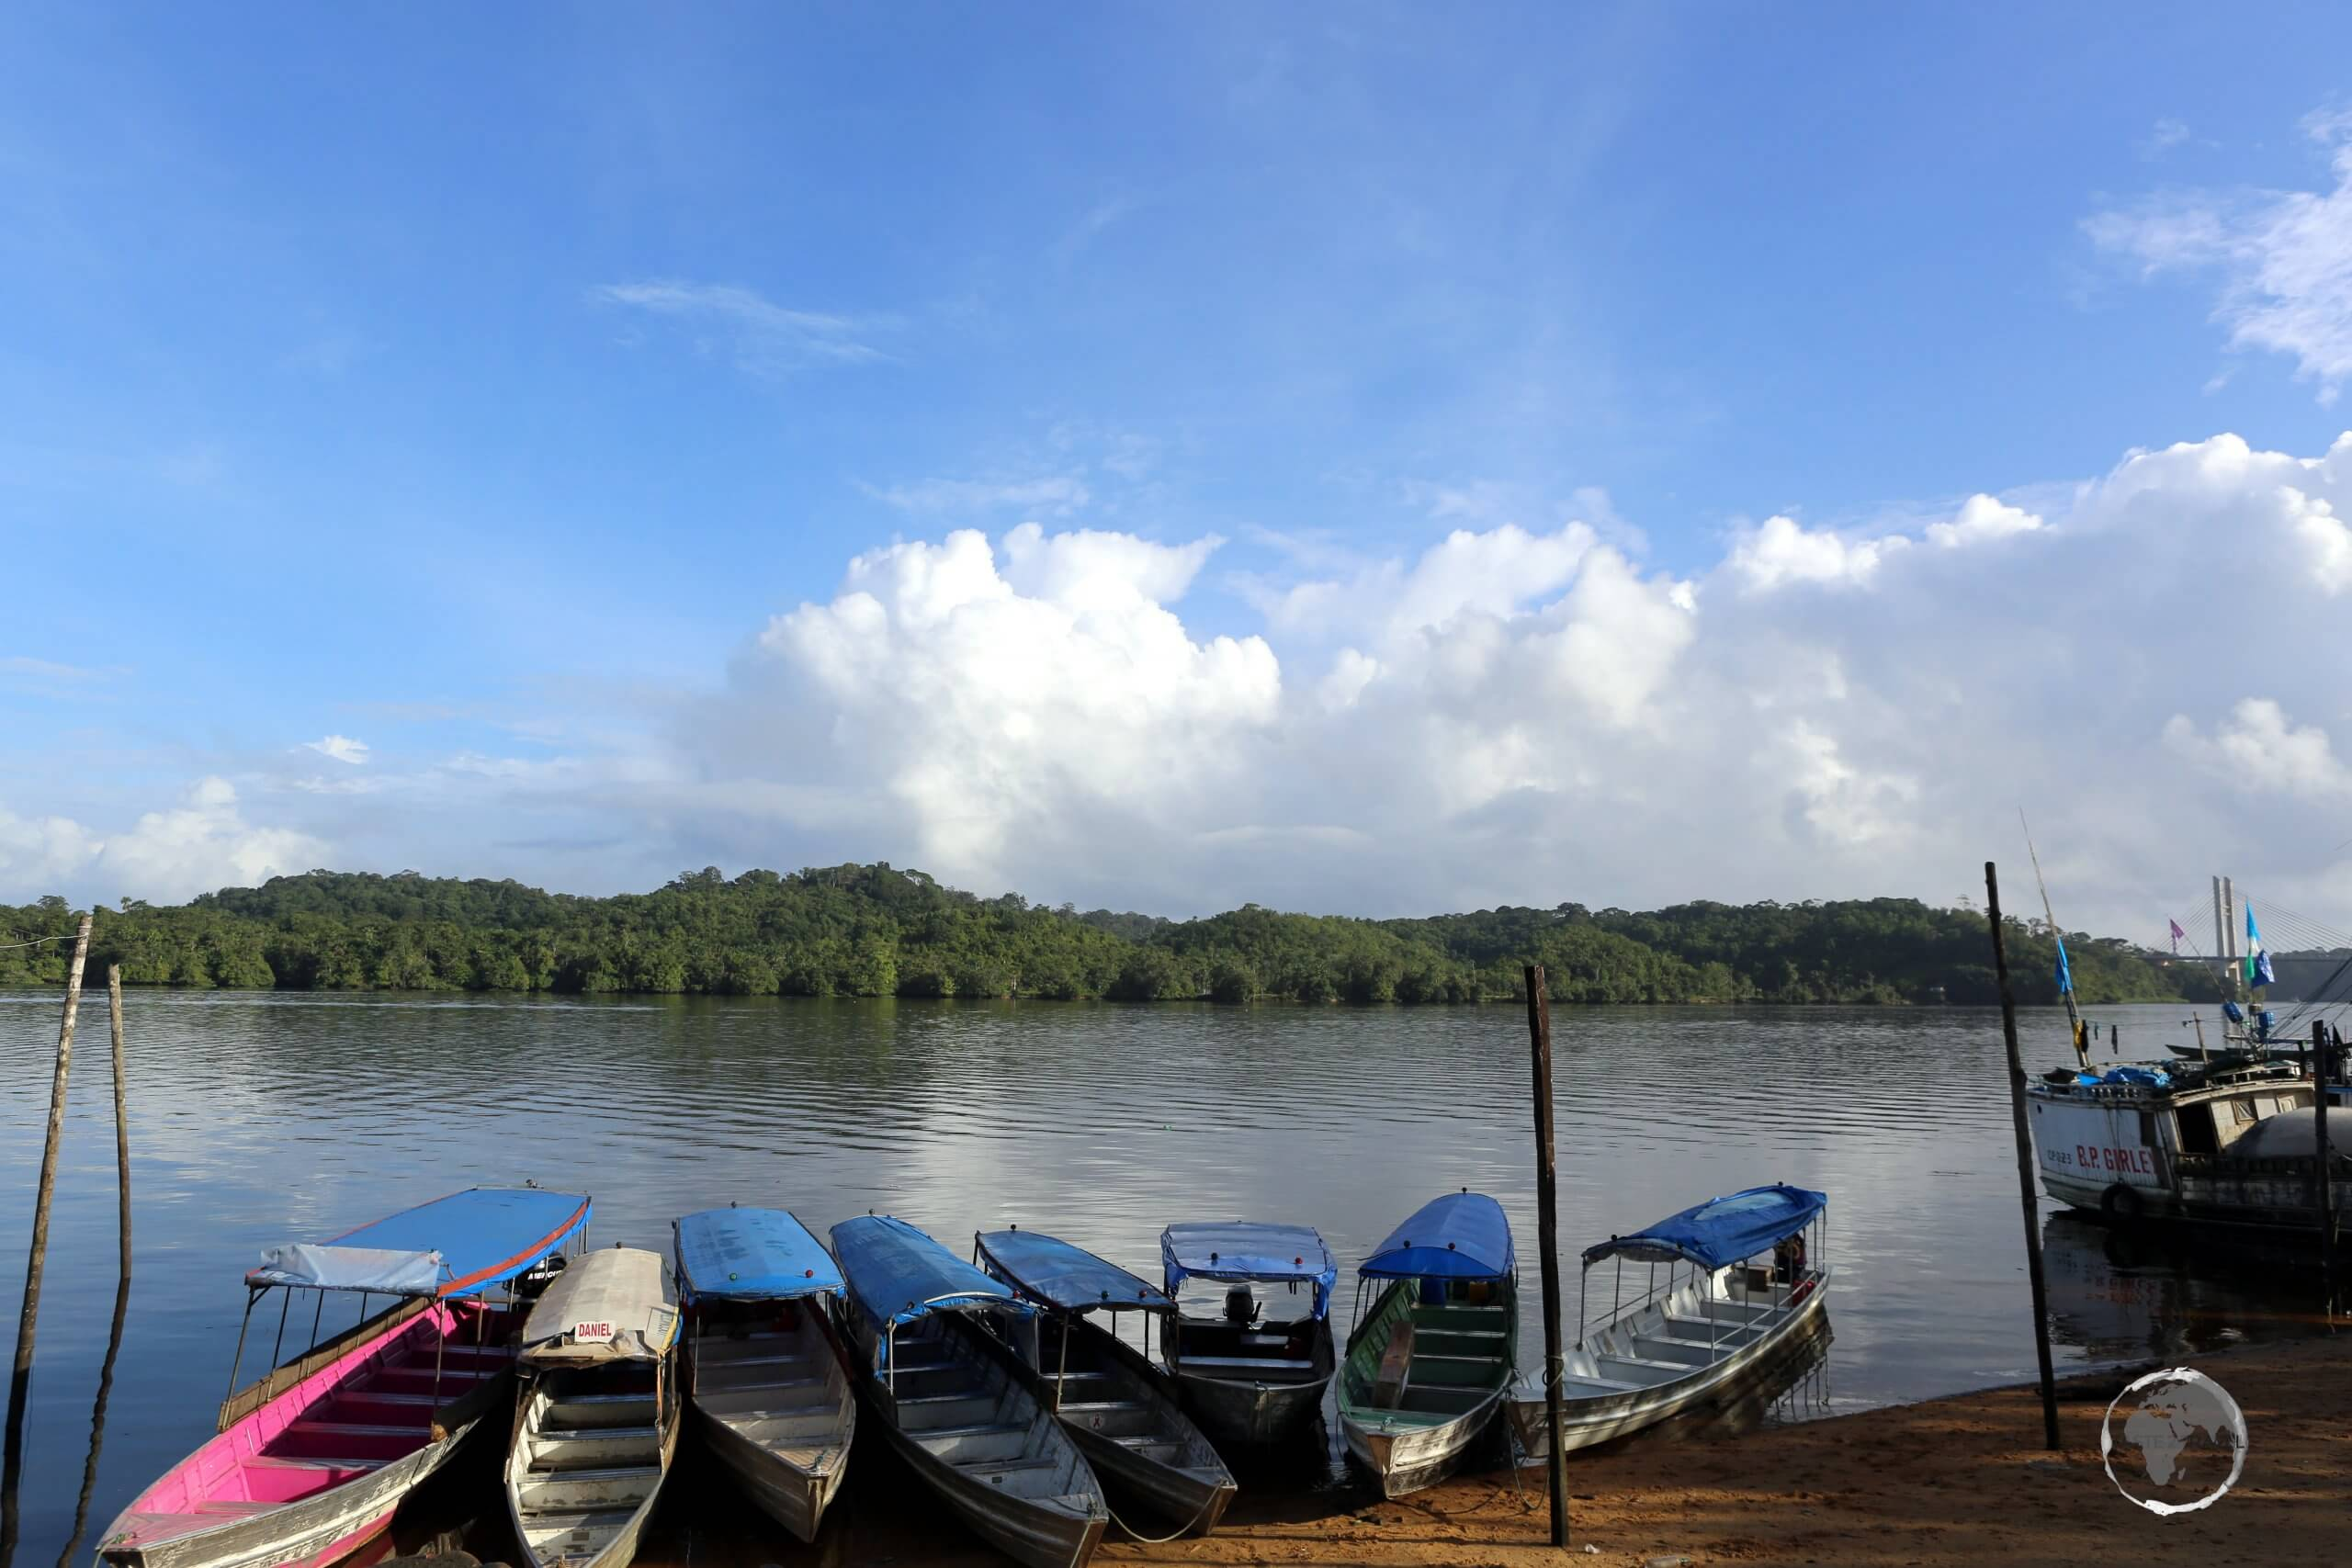 Boats on the Oyapock River, in the Brazilian frontier town of Oiapoque, Amapá state. French Guiana, a territory of France and part of the European Union, lies on the opposite bank.